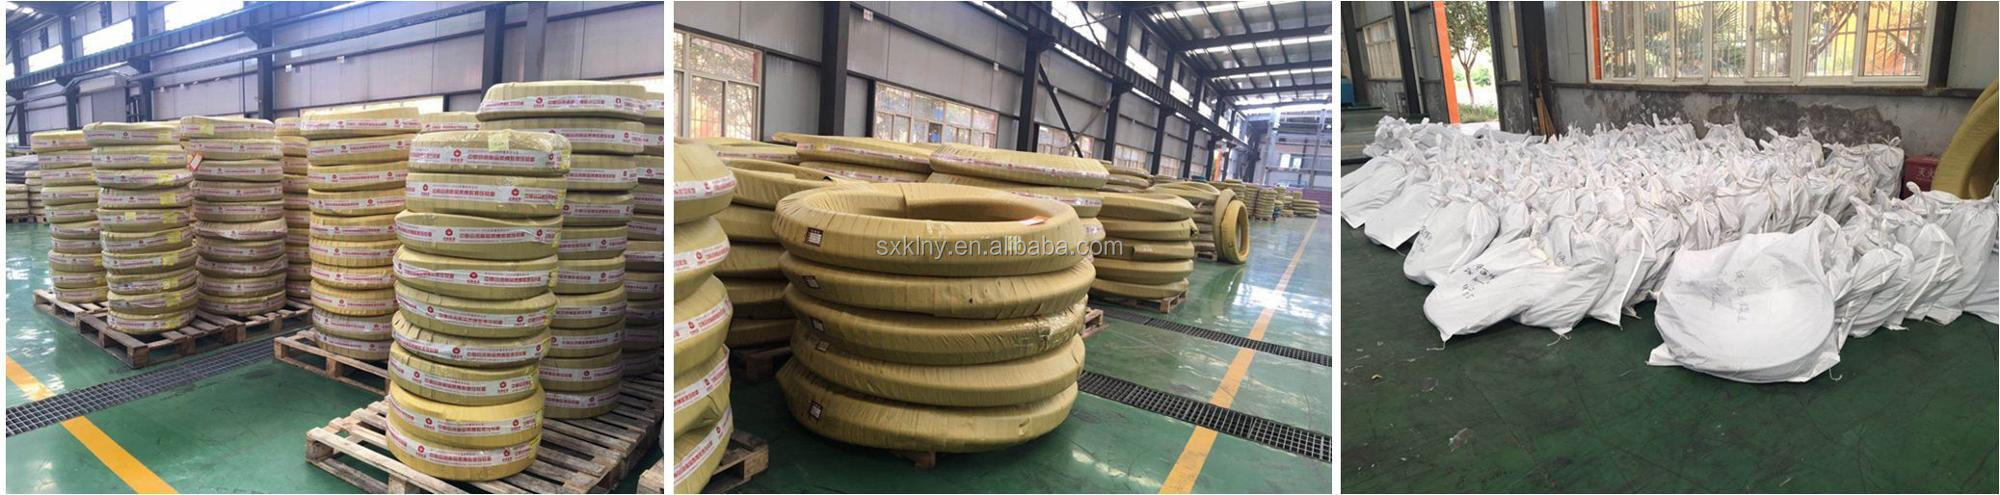 Oil resistant Industrial hydraulic rubber hose for suction and discharge